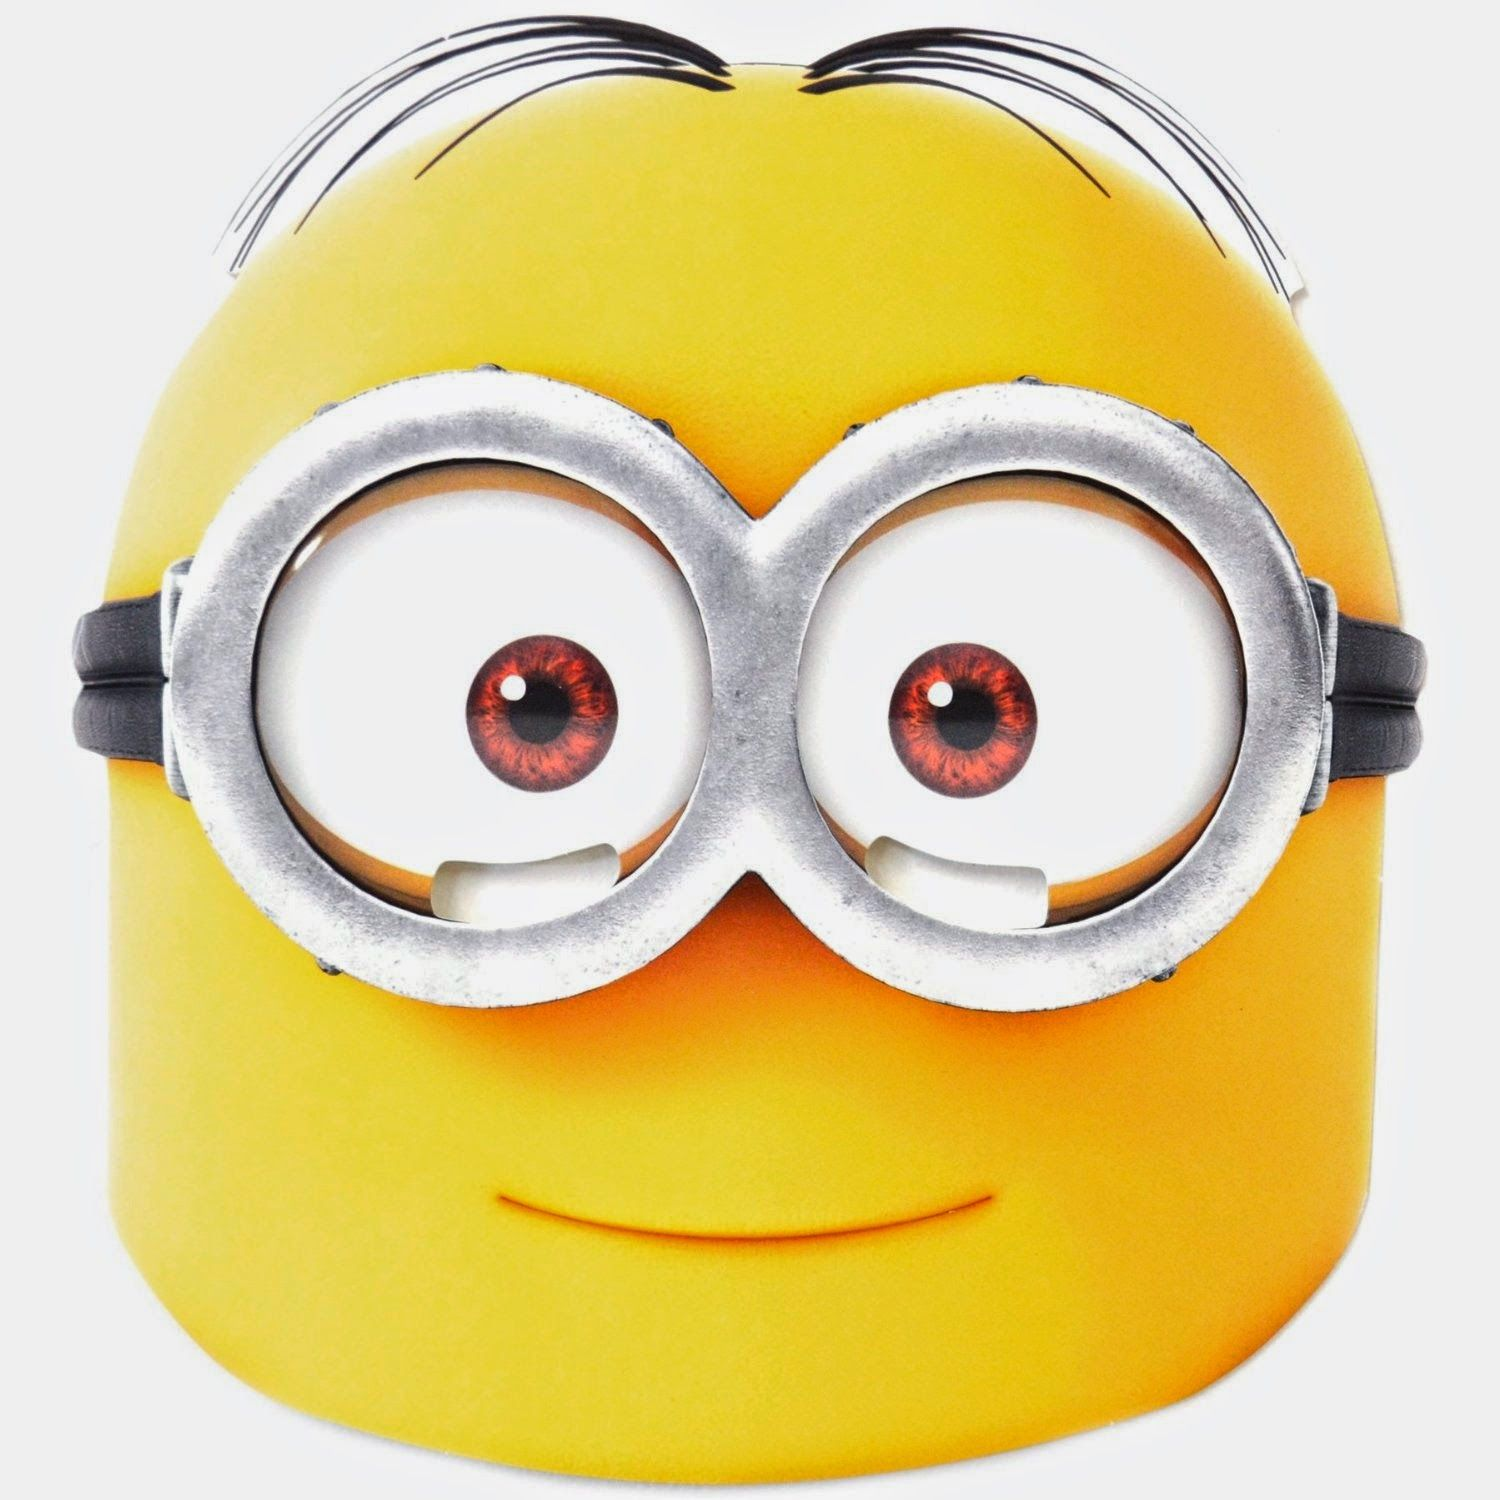 photograph relating to Minion Eyeball Printable identified as Minions Cost-free Printable Mask. Bash Minions Minion